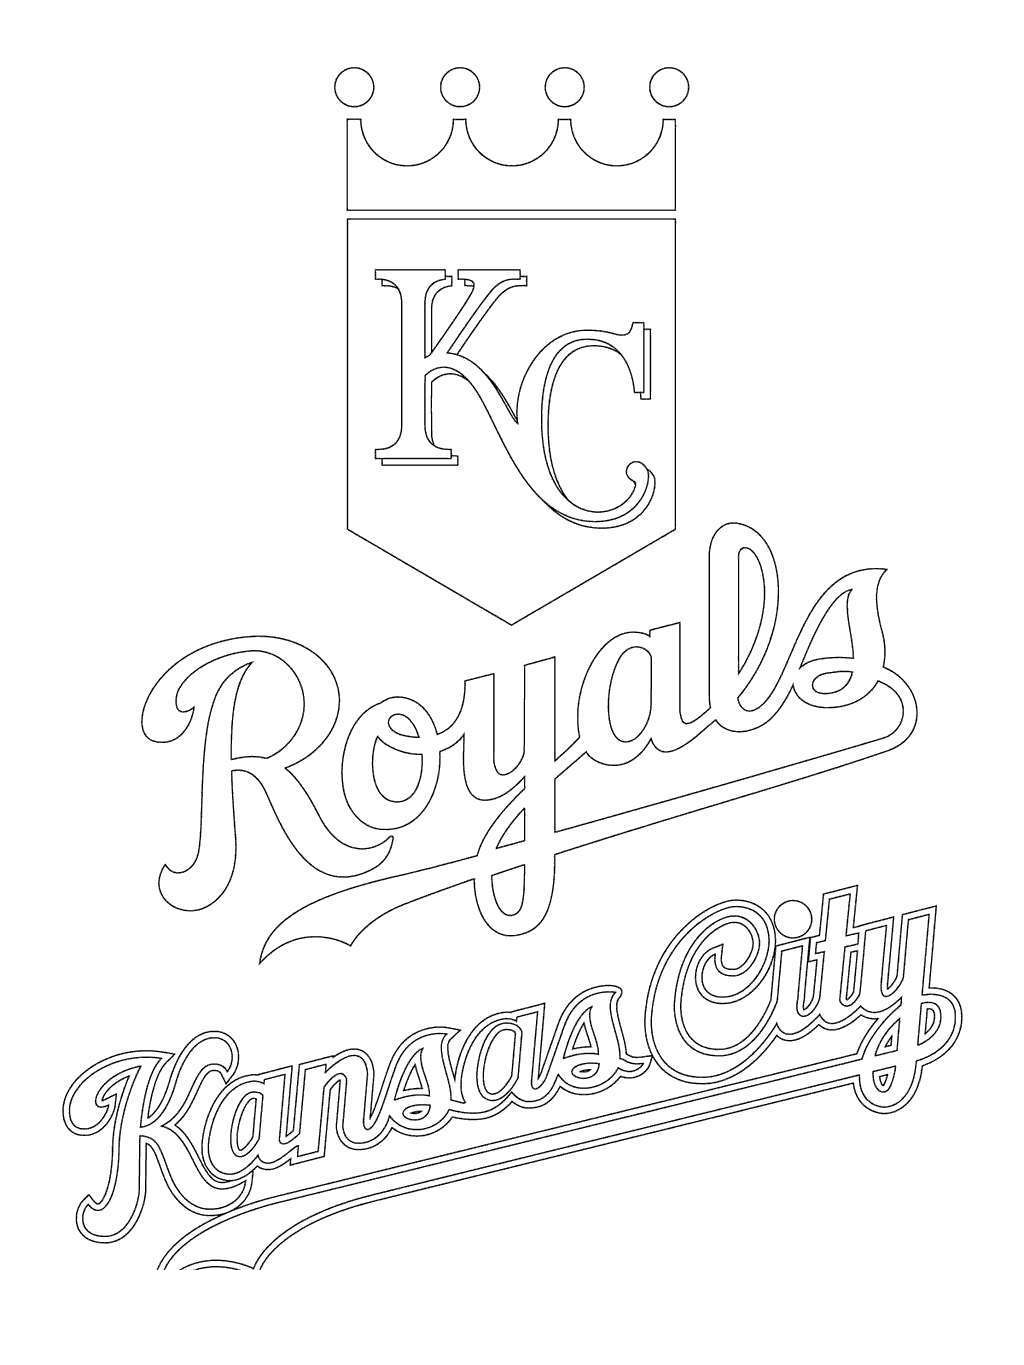 kansas city chiefs coloring pages nfl team logos coloring pages getcoloringpagescom pages kansas city coloring chiefs